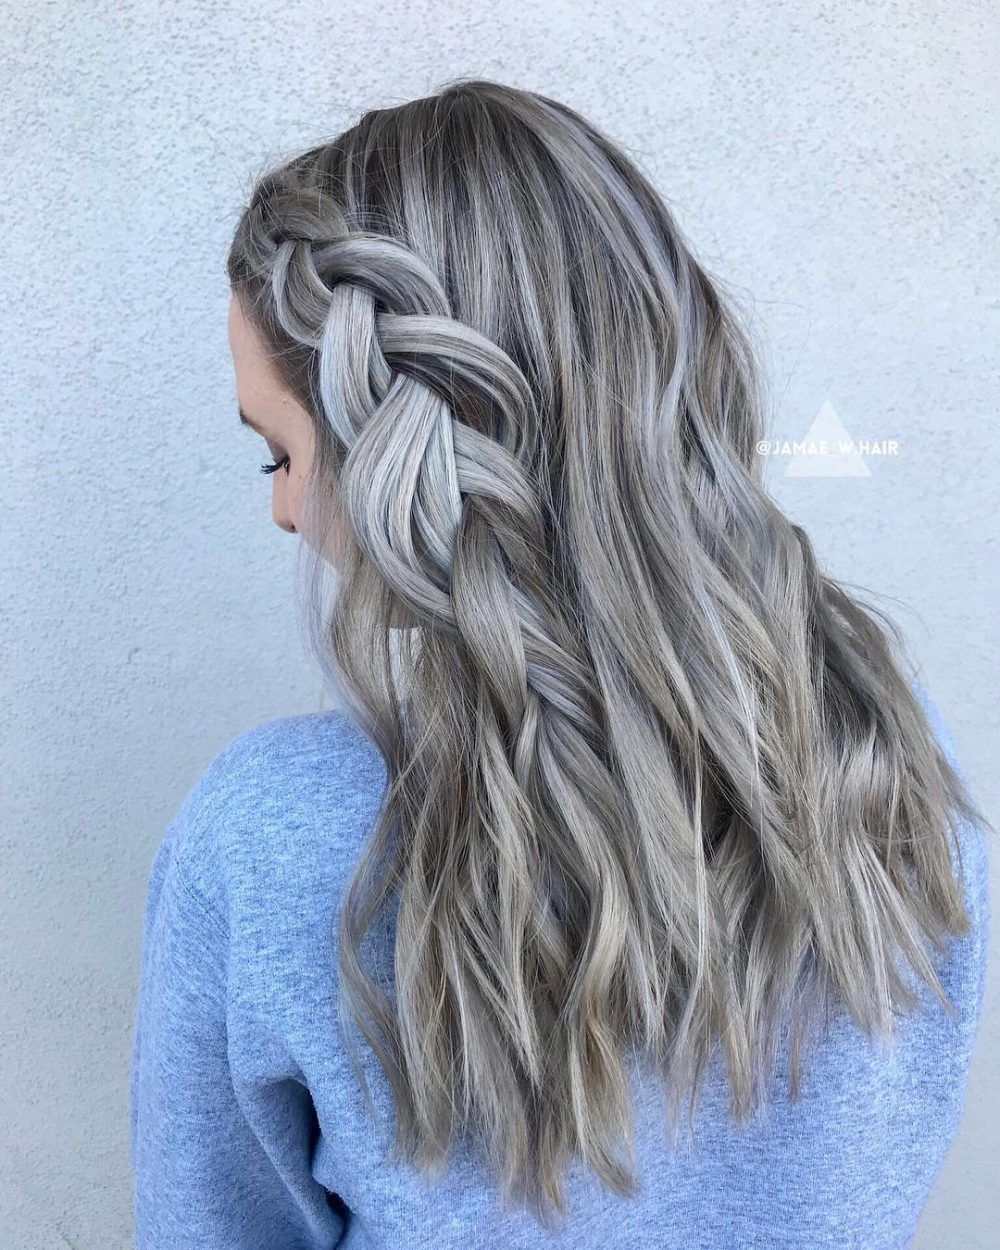 35 Hottest Chocolate Brown Hair Color Ideas of 202